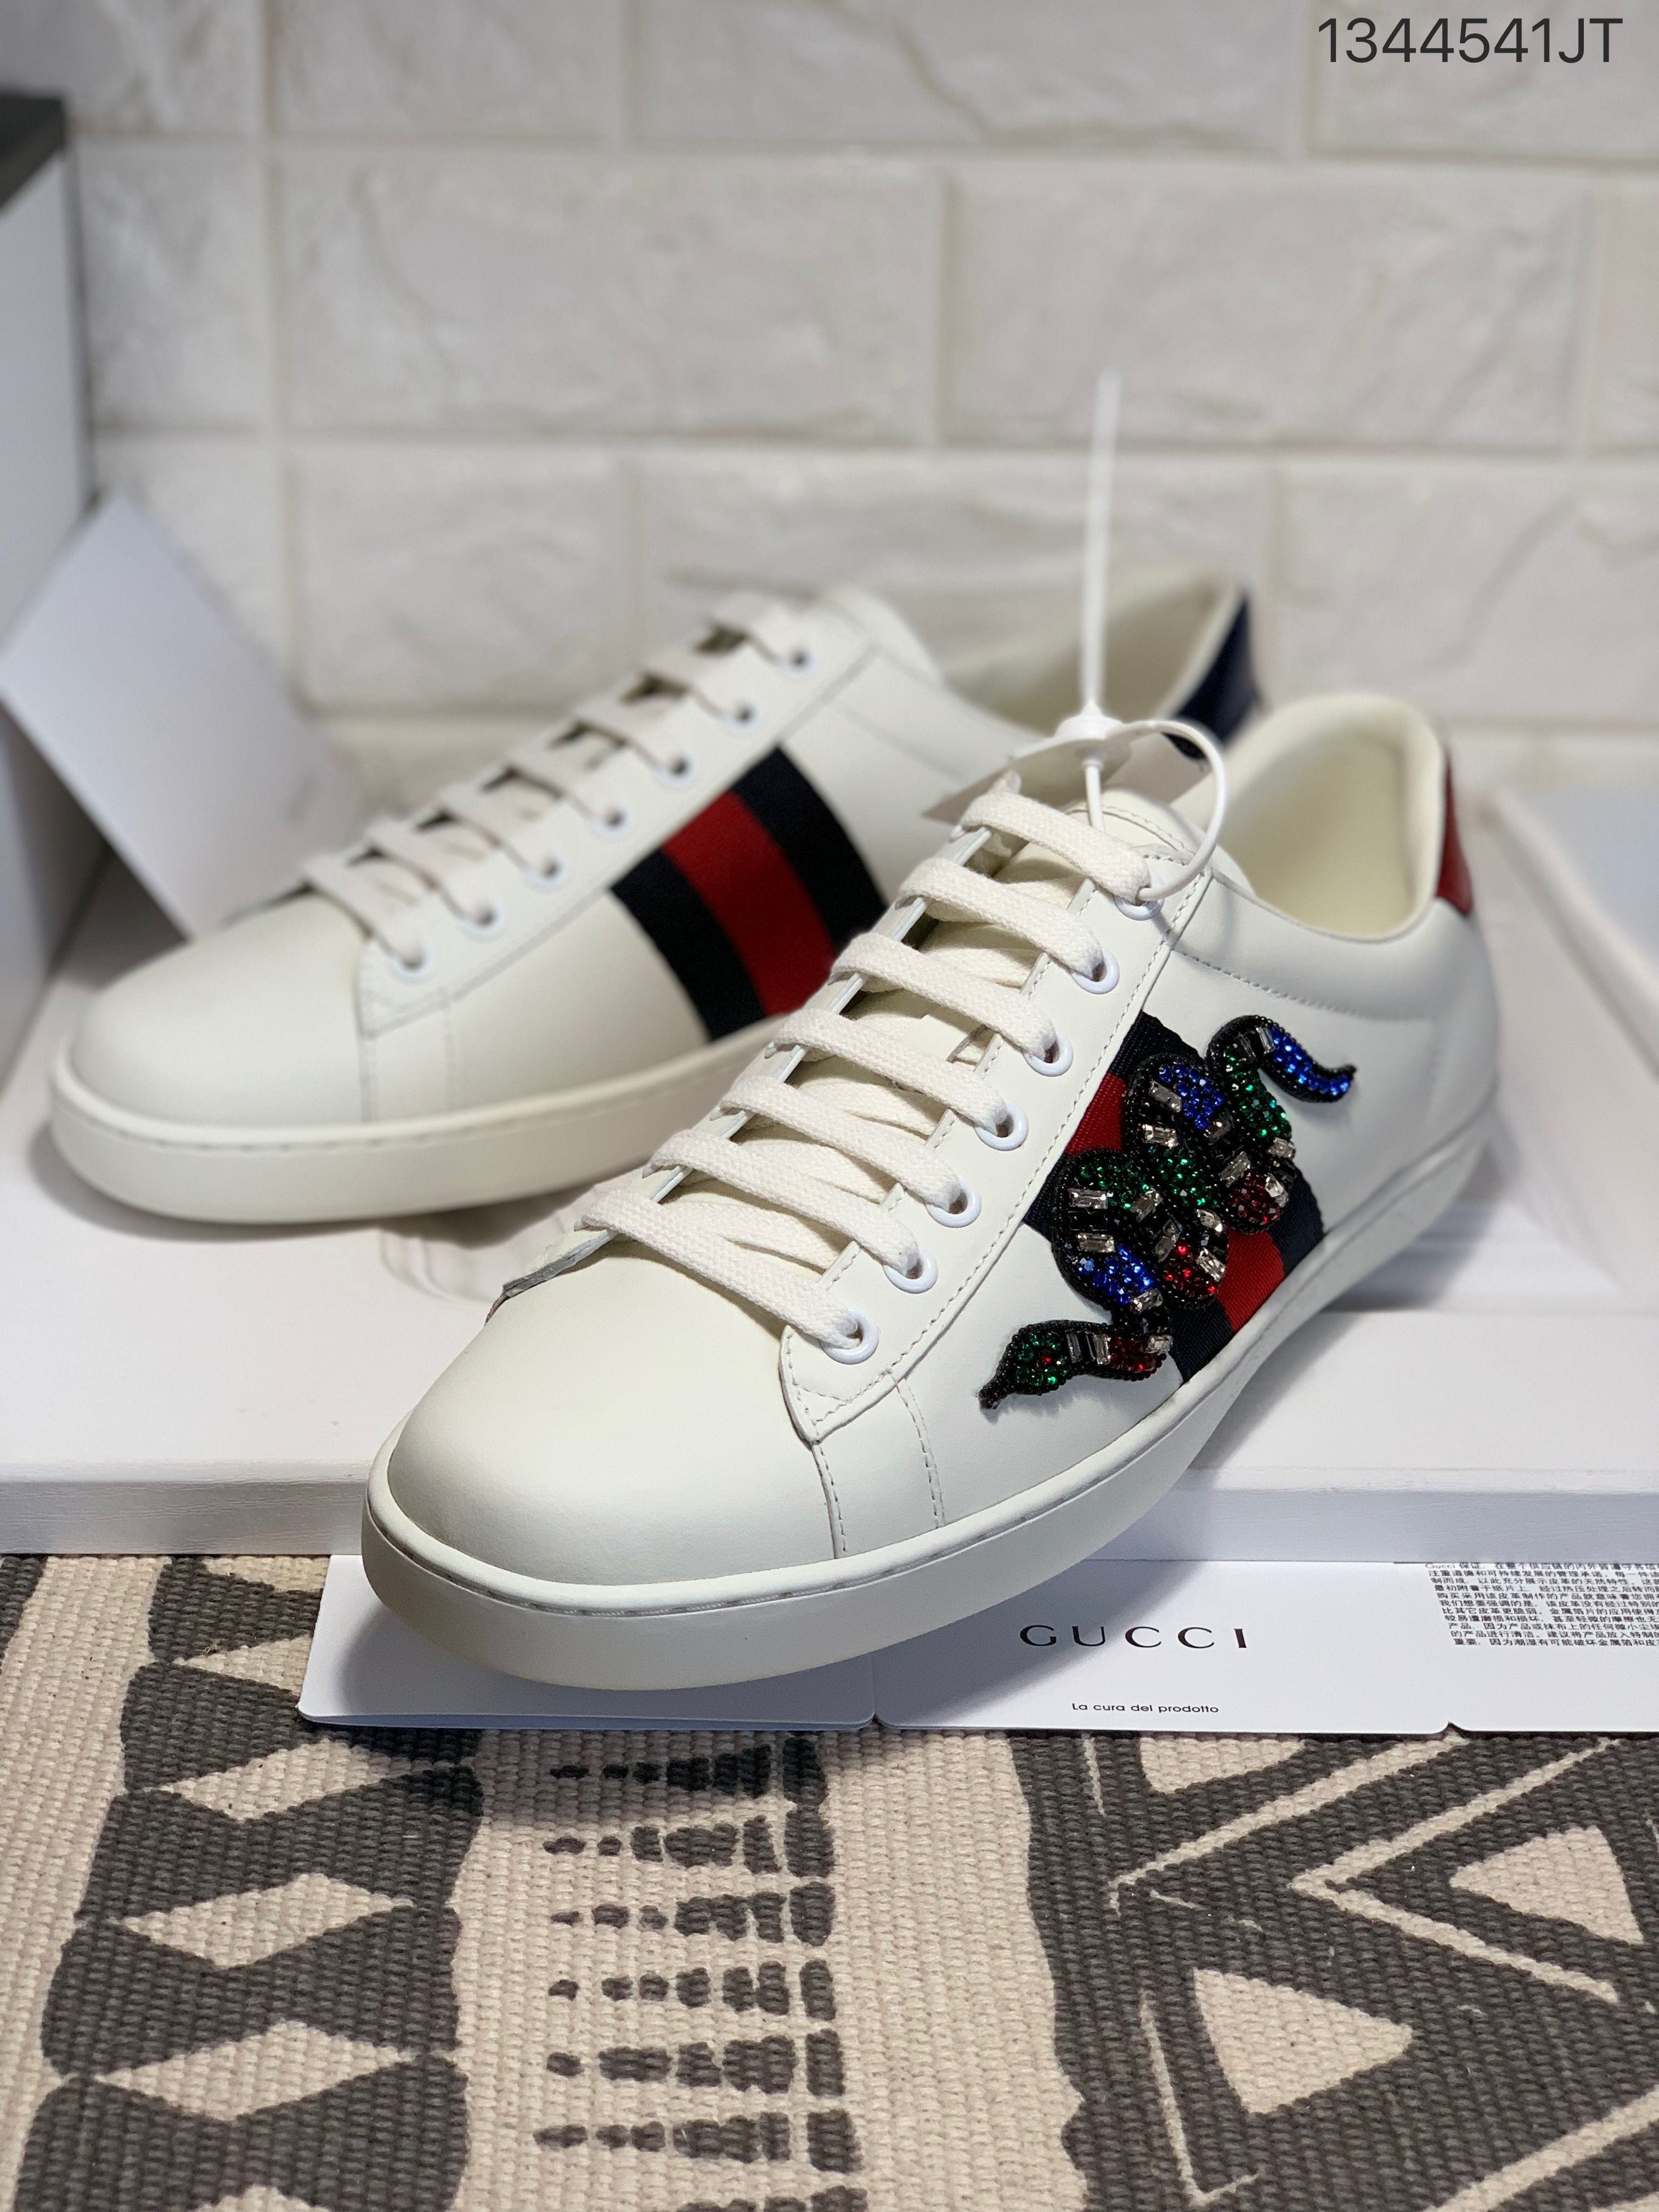 Gucci Woman Man Couple Ace Sneakers Stoned Snake Style Flats Gucci Shoes Couple Shoes Louis Vuitton Shoes